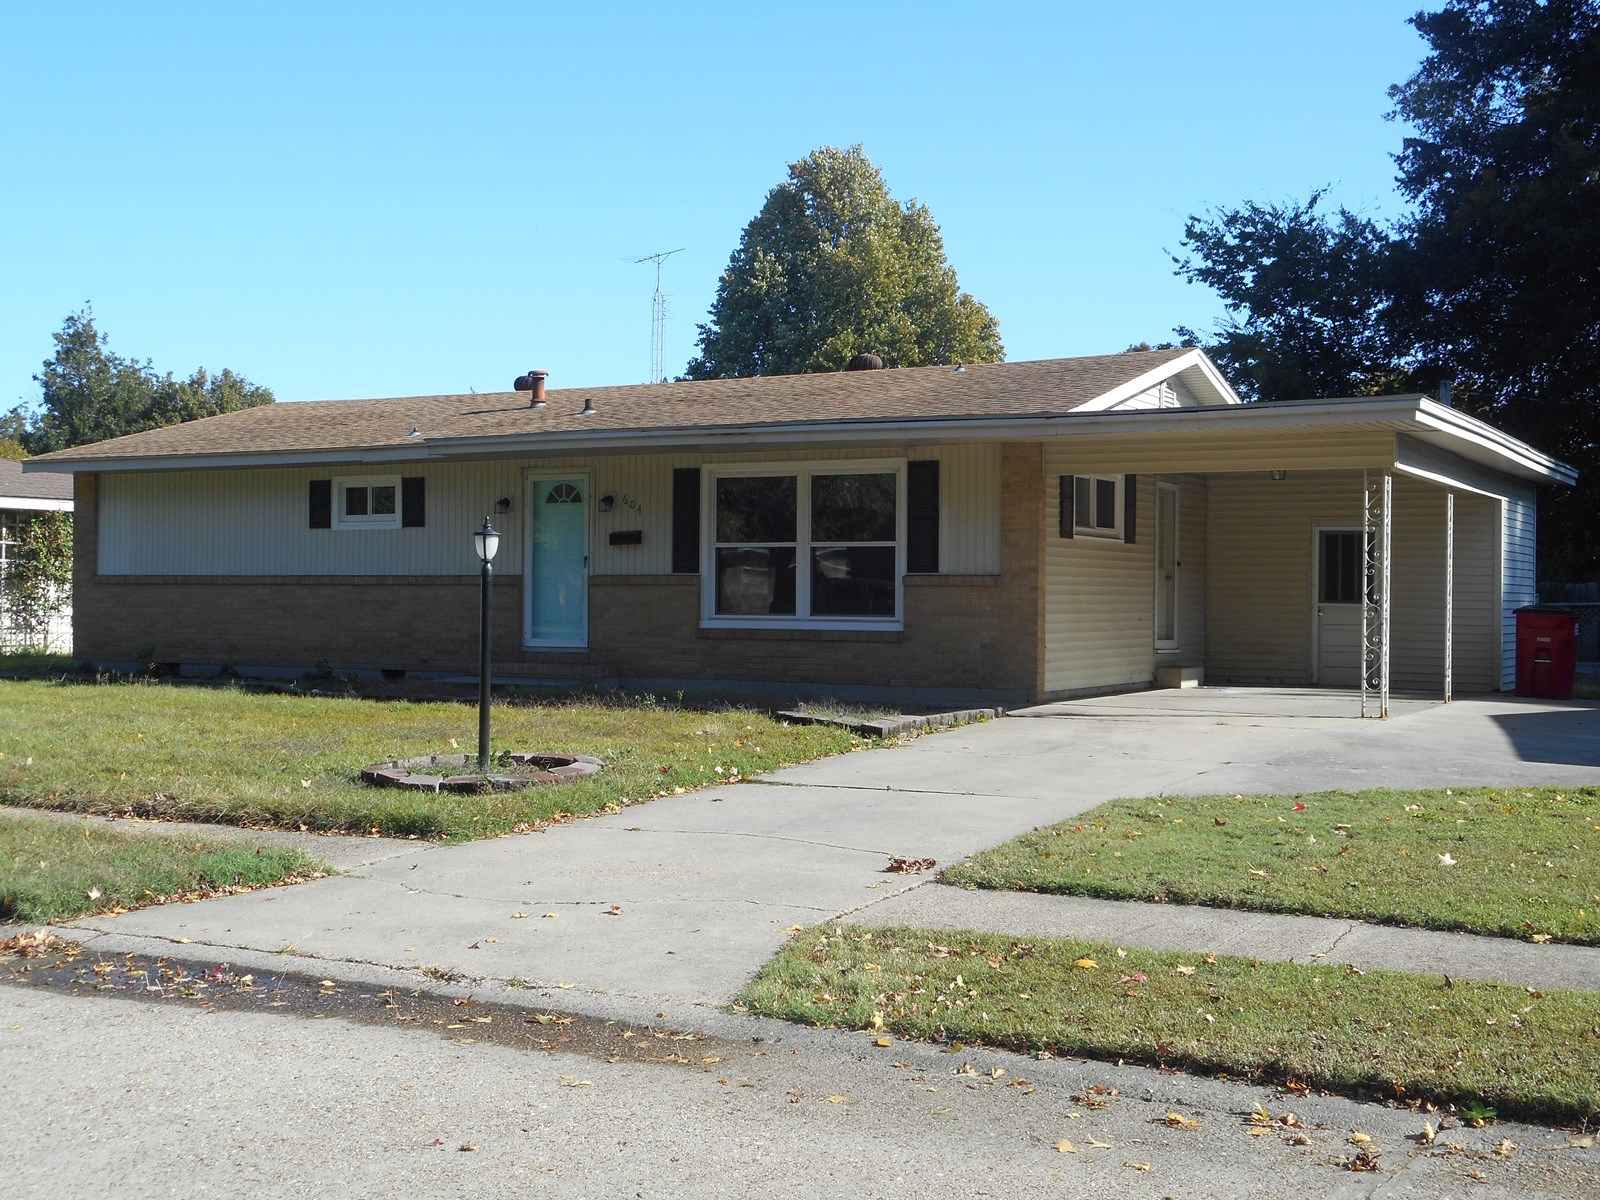 For Sale 3 BR, 2 Ba house in Sikeston, MO.